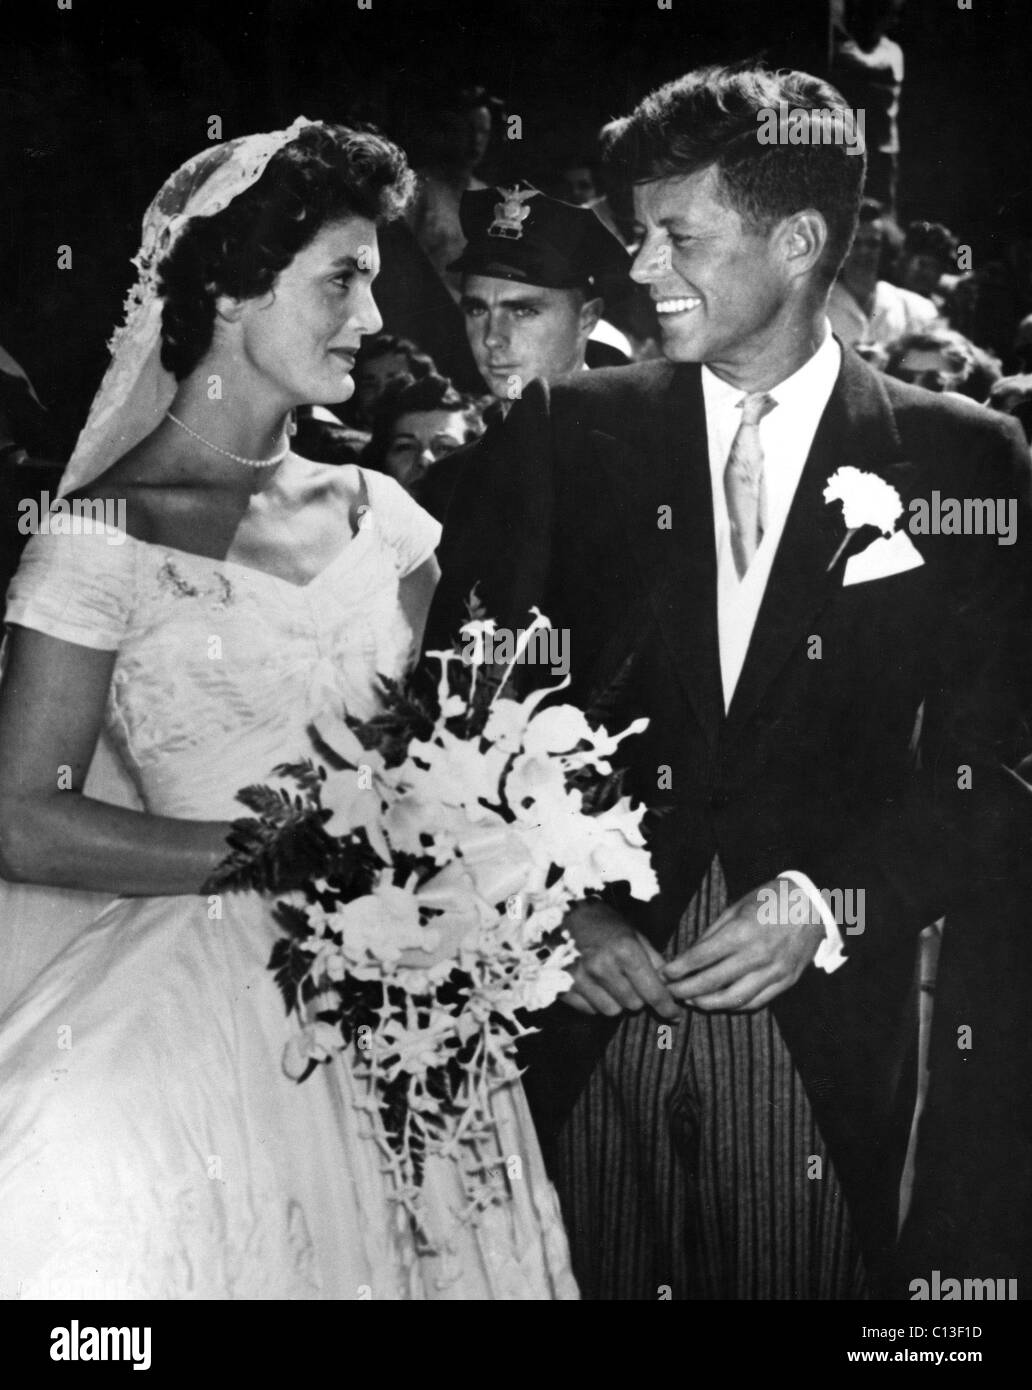 Jacqueline kennedy and john f kennedy on their wedding day stock jacqueline kennedy and john f kennedy on their wedding day junglespirit Gallery